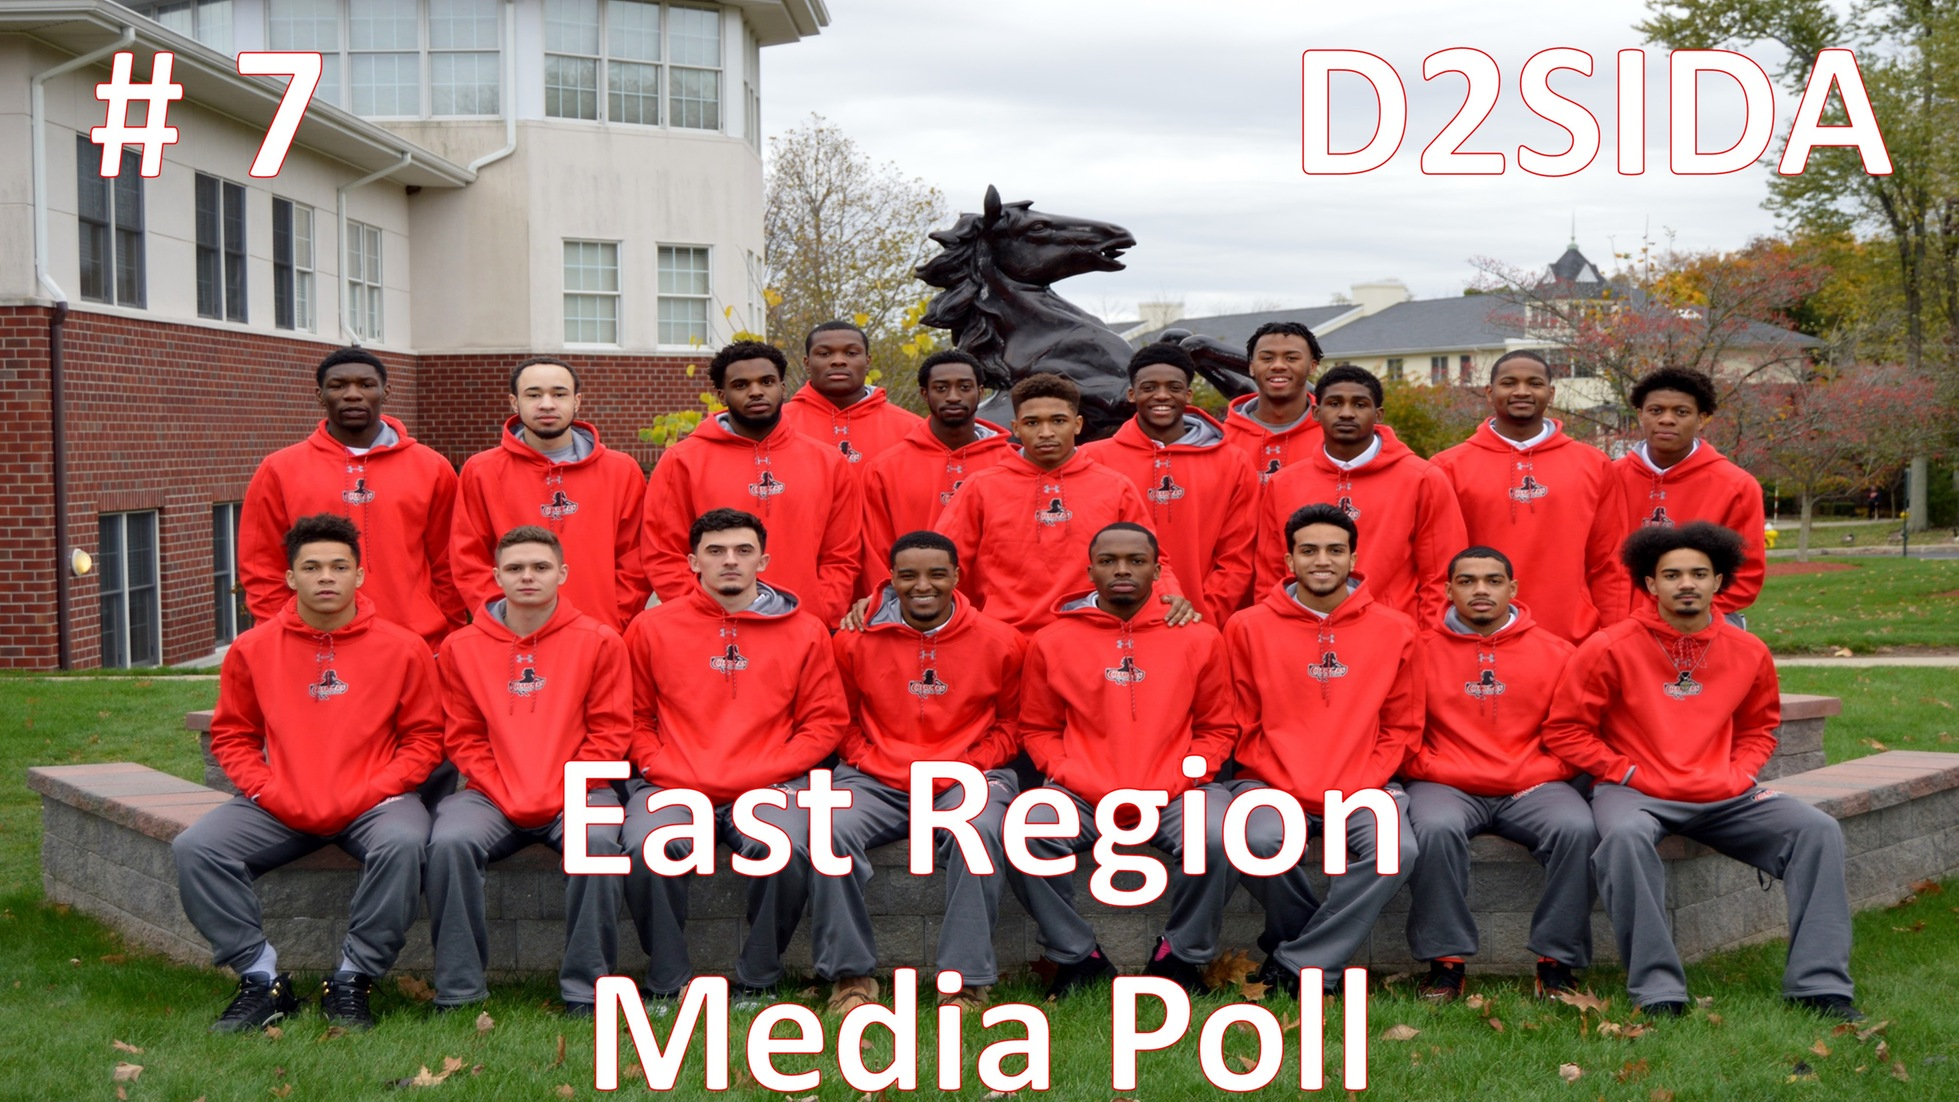 MEN'S BASKETBALL MOVE UP ONE SPOT IN LATEST D2SIDA EAST REGION RANKINGS